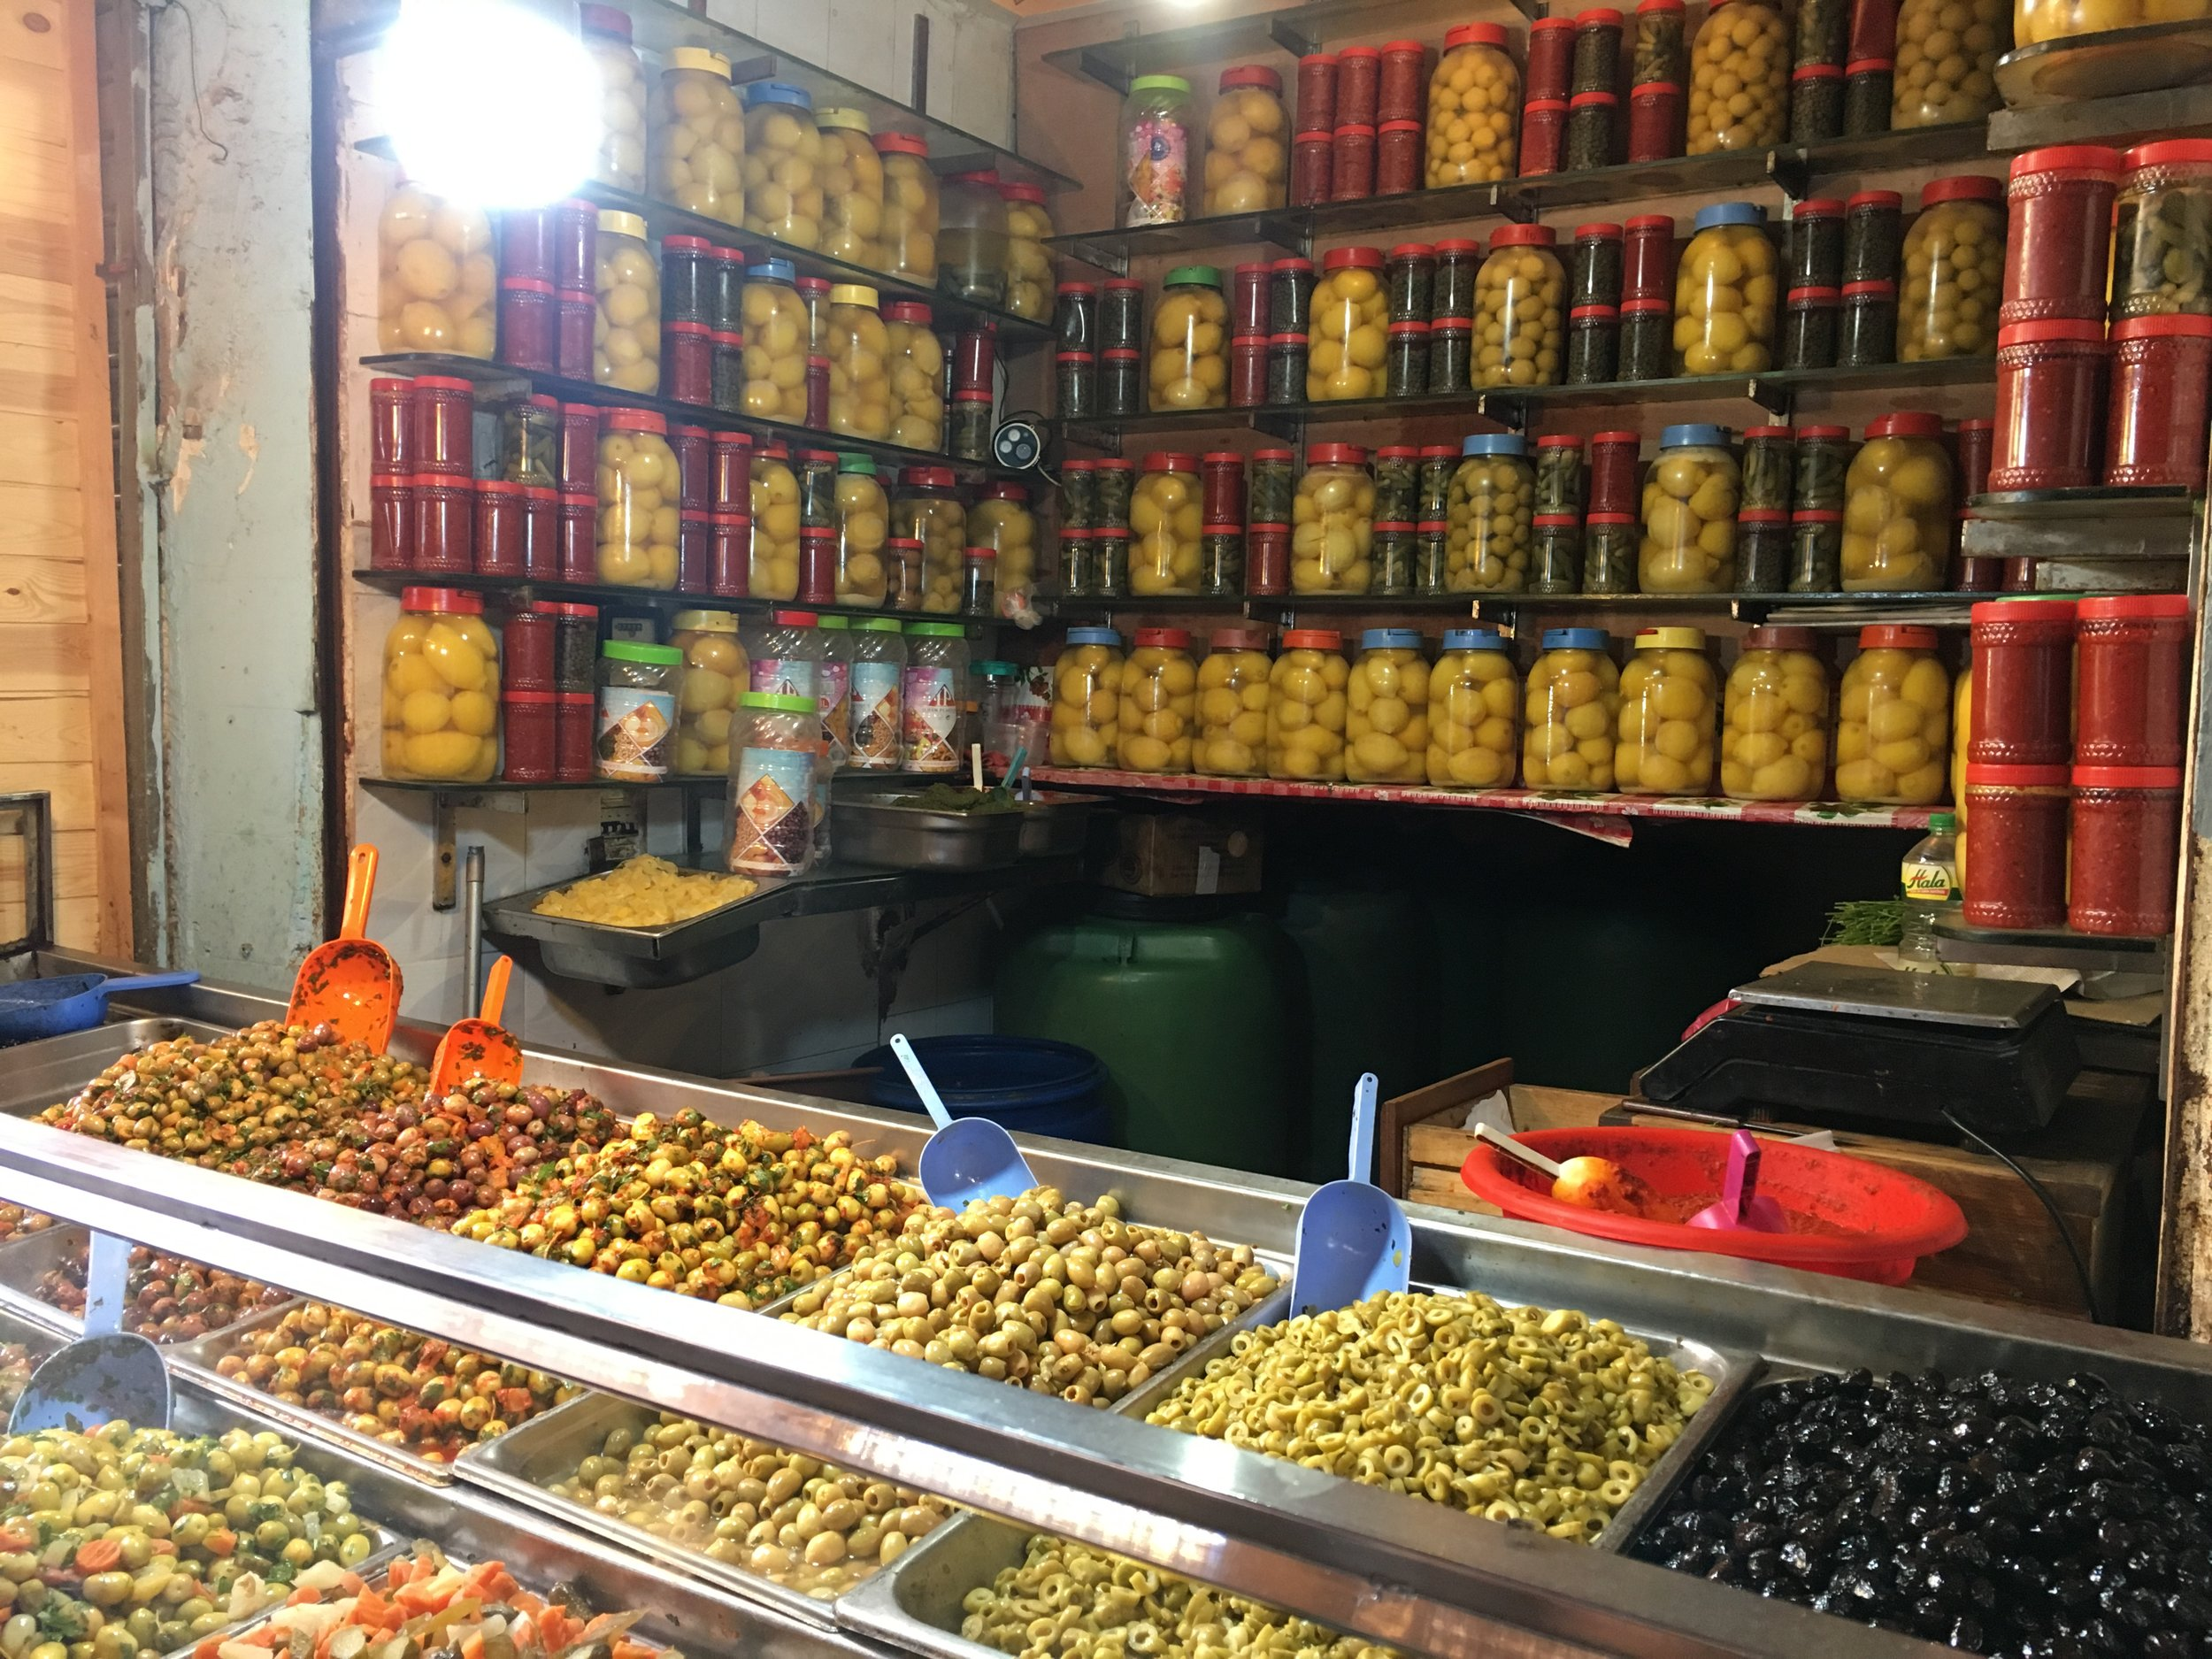 Black olives are simply salted while green (and the purple olives that grow on the same tree) are soaked over and over to lessen their bitterness before flavors like garlic and chili powder is added.